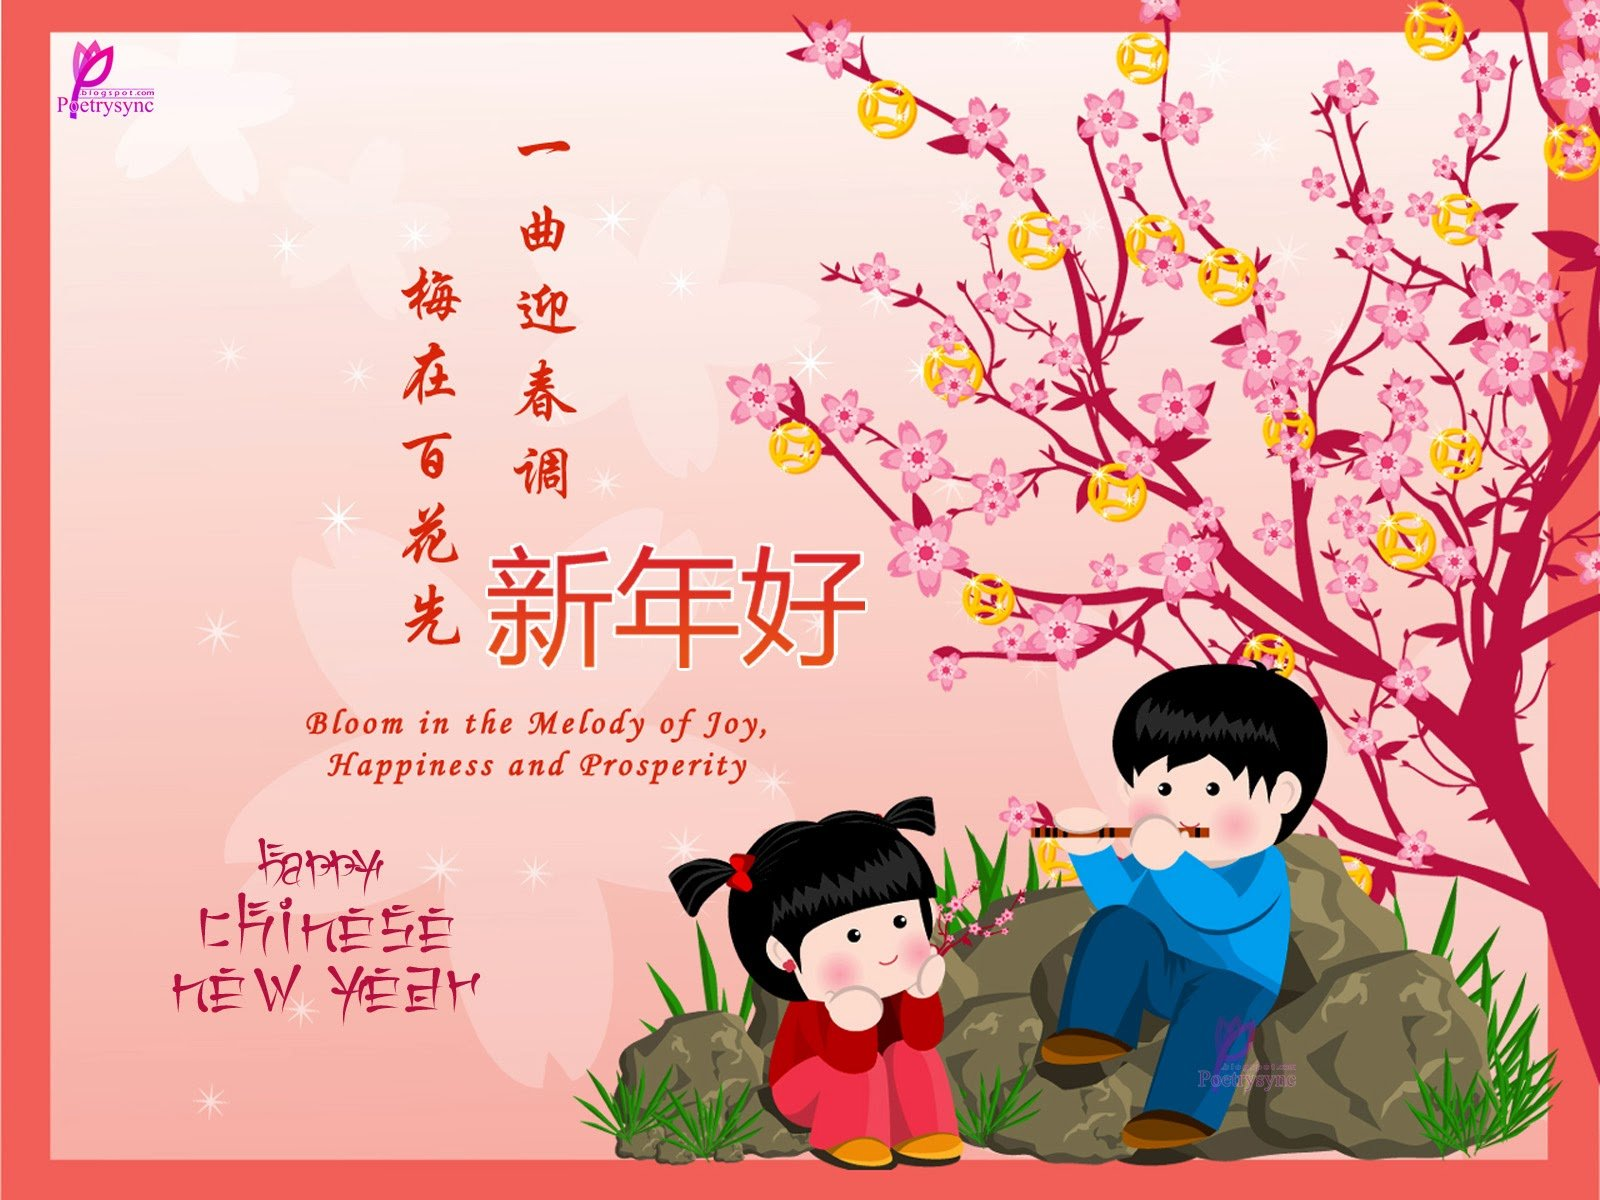 Happy Chinese New Year Wishes Lunar New Year HD Wallpapers Happy Tet 1600x1200